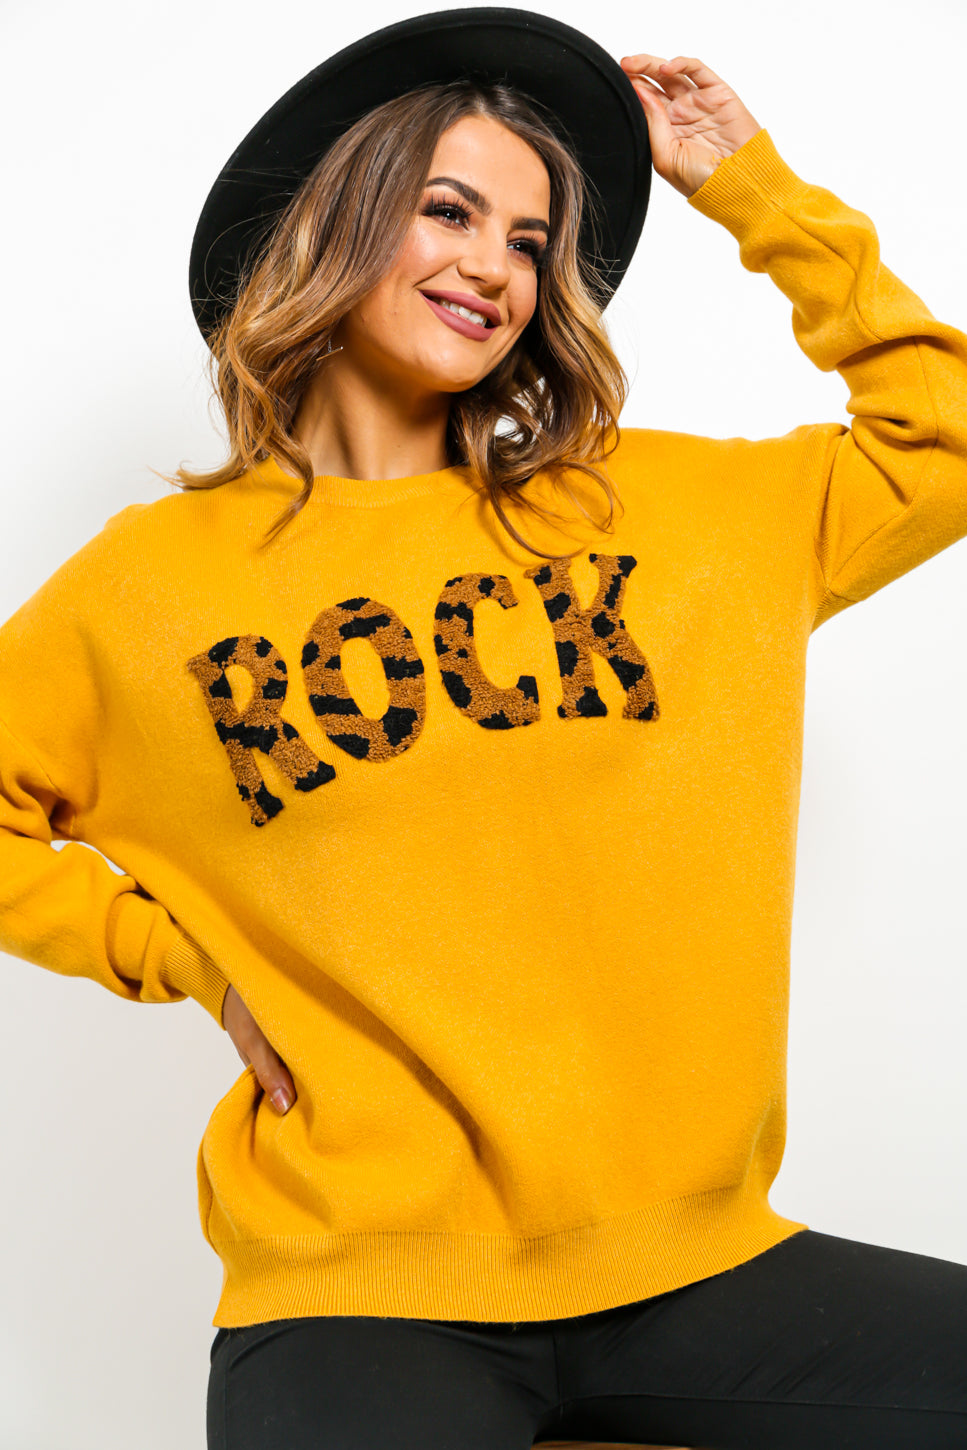 https://cdn.shopify.com/s/files/1/0062/6661/7925/files/product-video-planet_rock-_jumper_in_mustard.mp4?6445